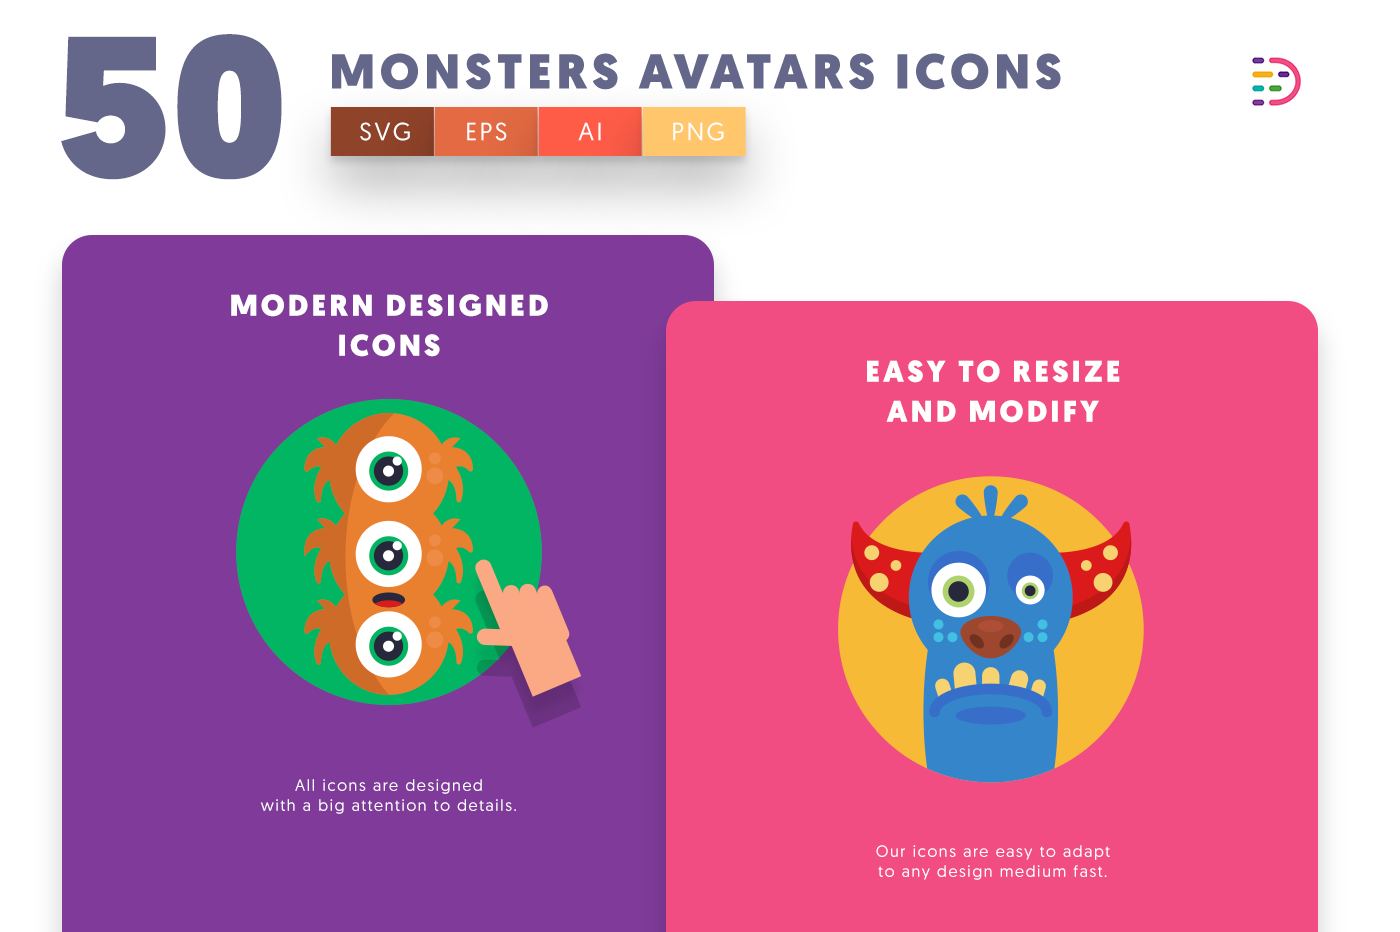 Monsters Avatars icons png/svg/eps